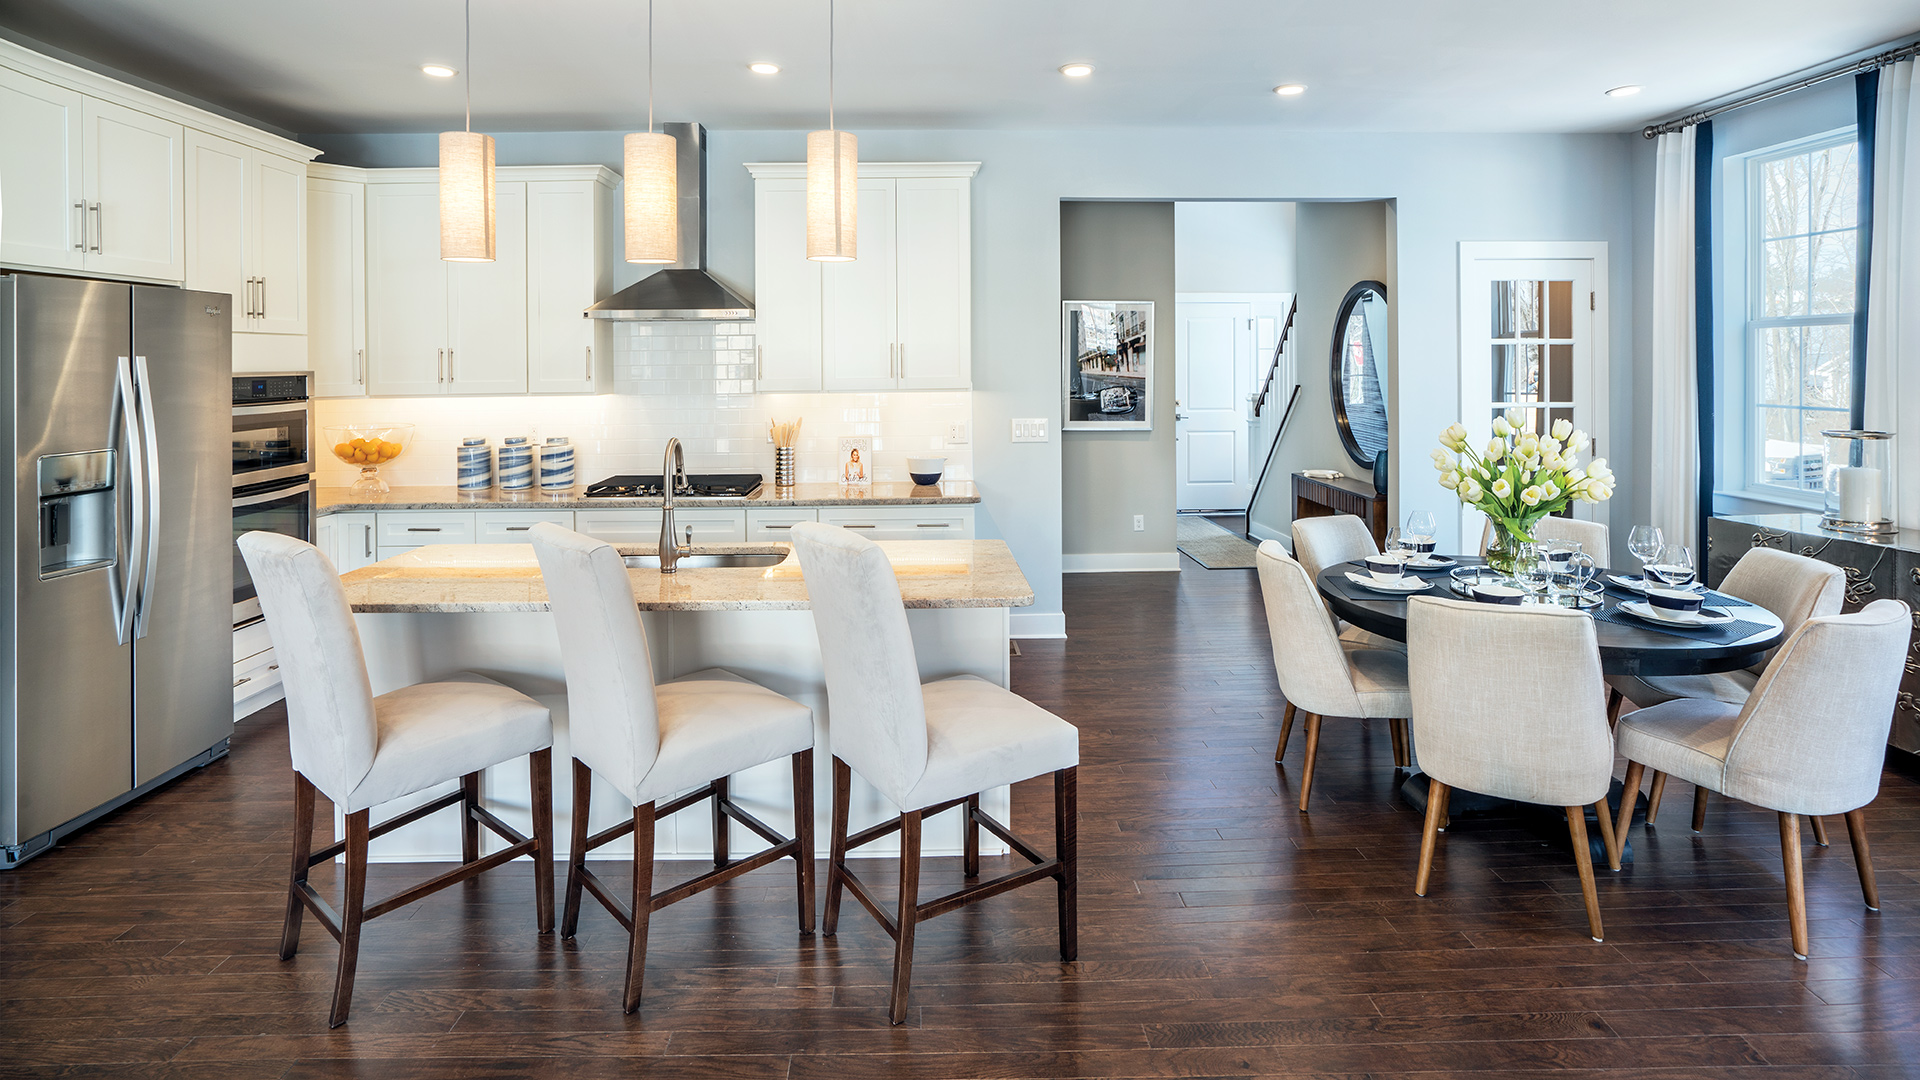 Carriage Collection features open kitchens with casual dining areas